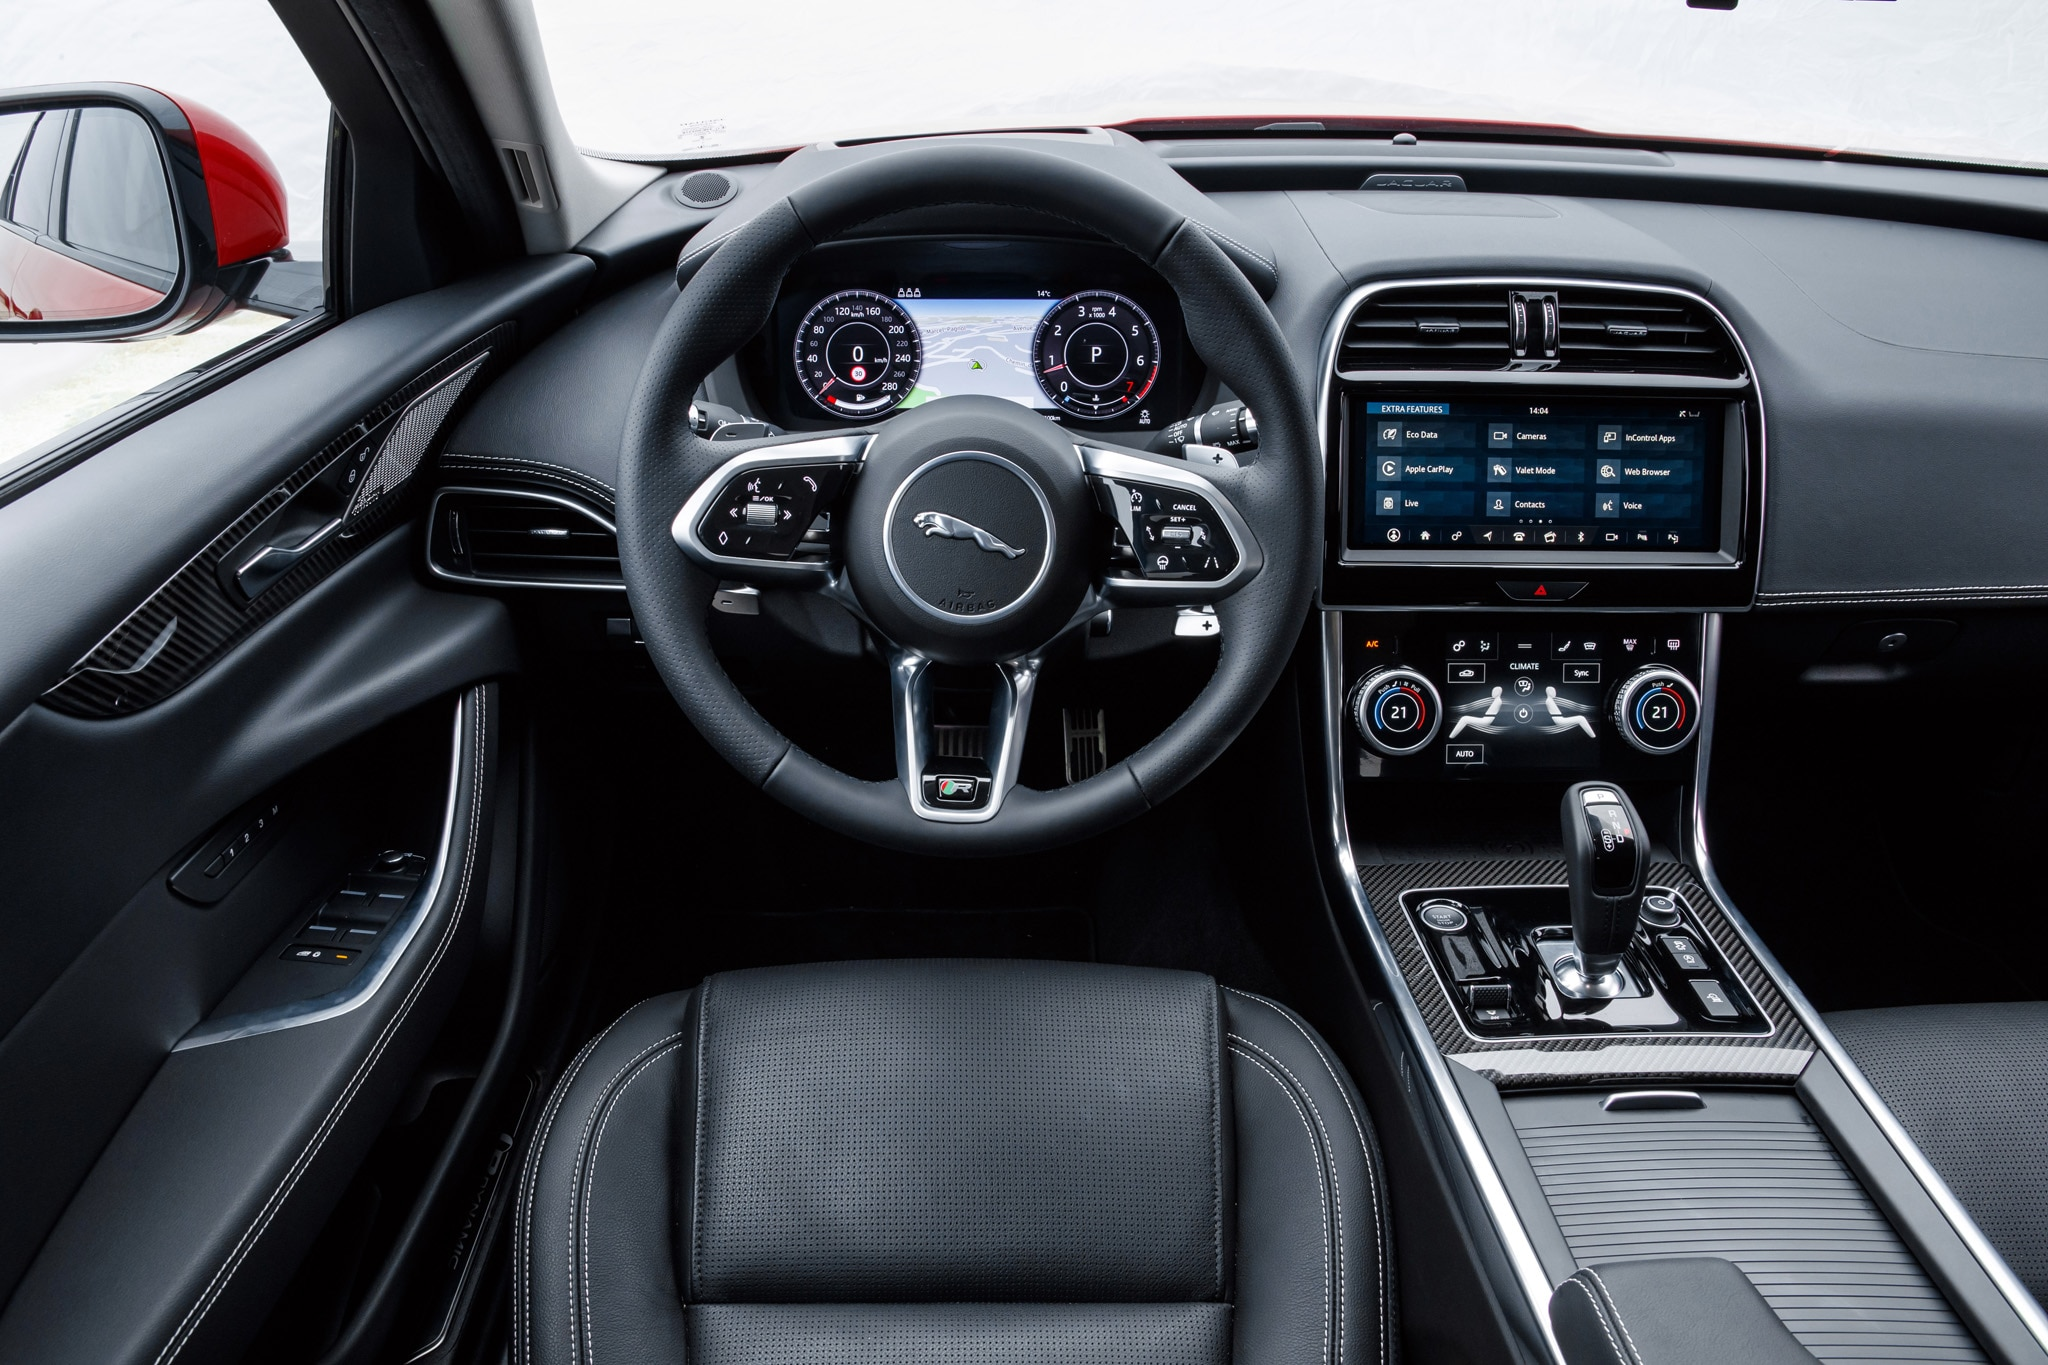 2020 jaguar xe first drive: down two cylinders, up one